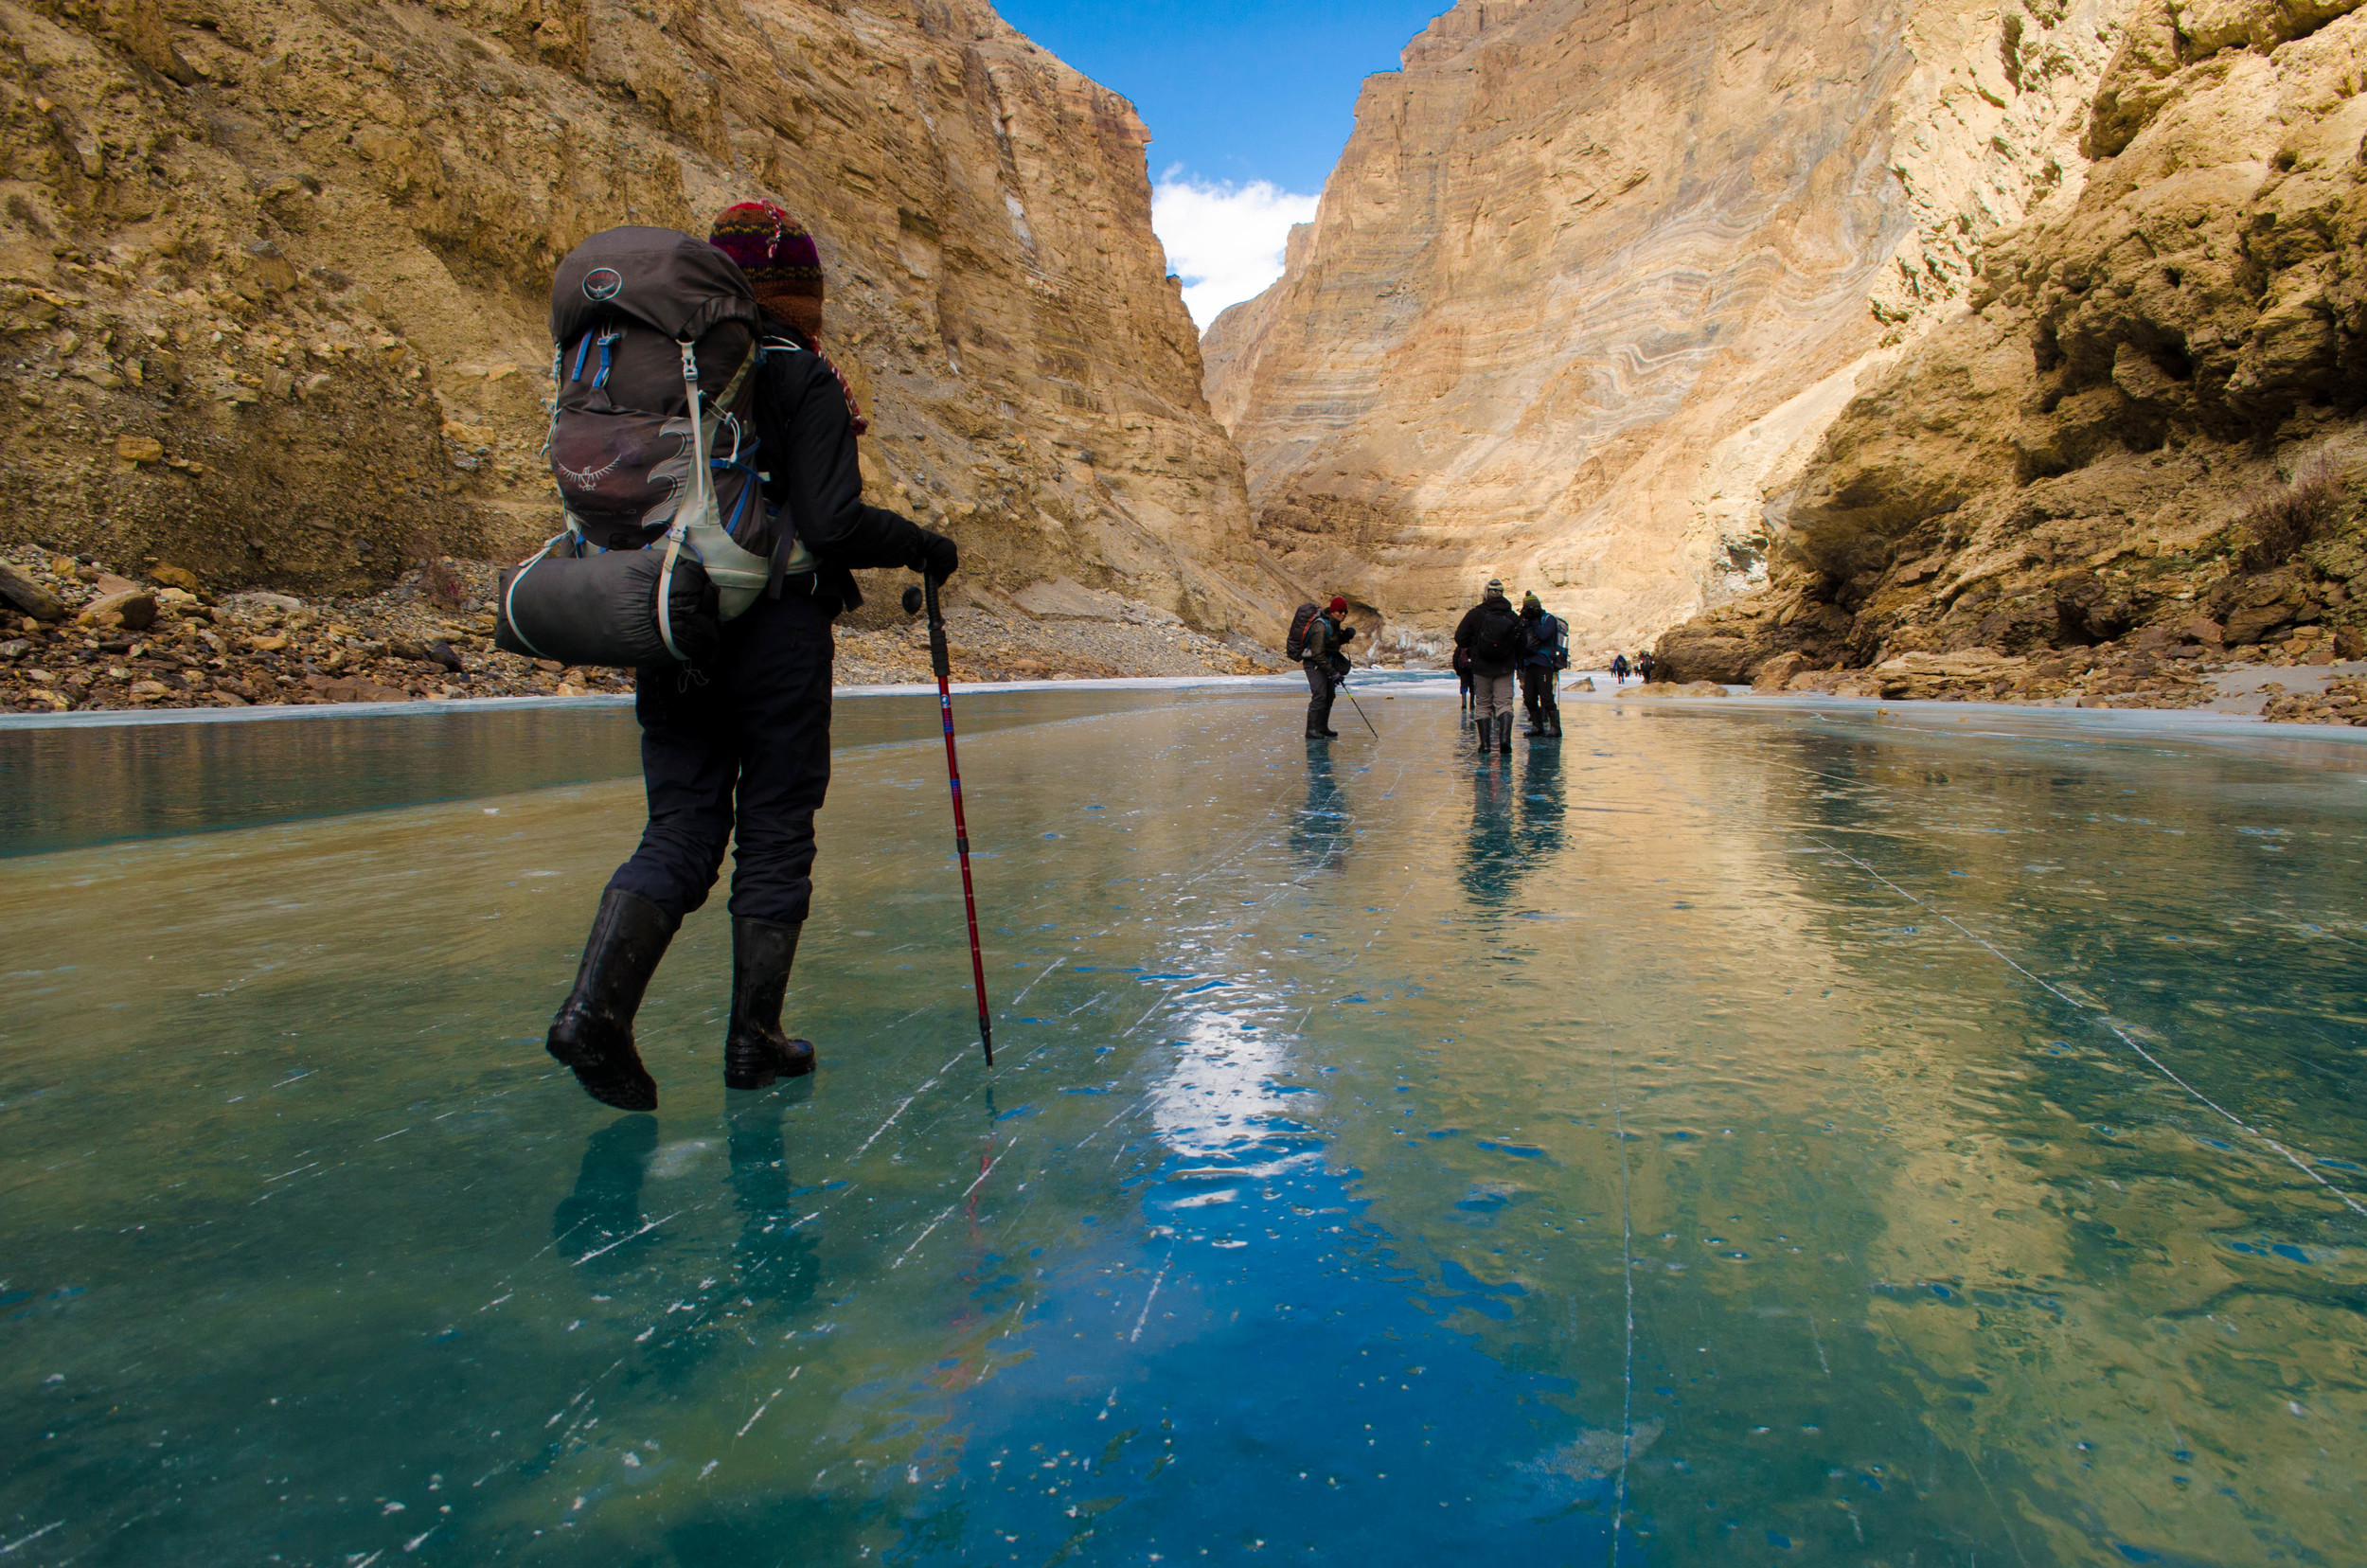 The reflections during the chadar trek in ladakh was absolutely heavenly. PC: Raunak